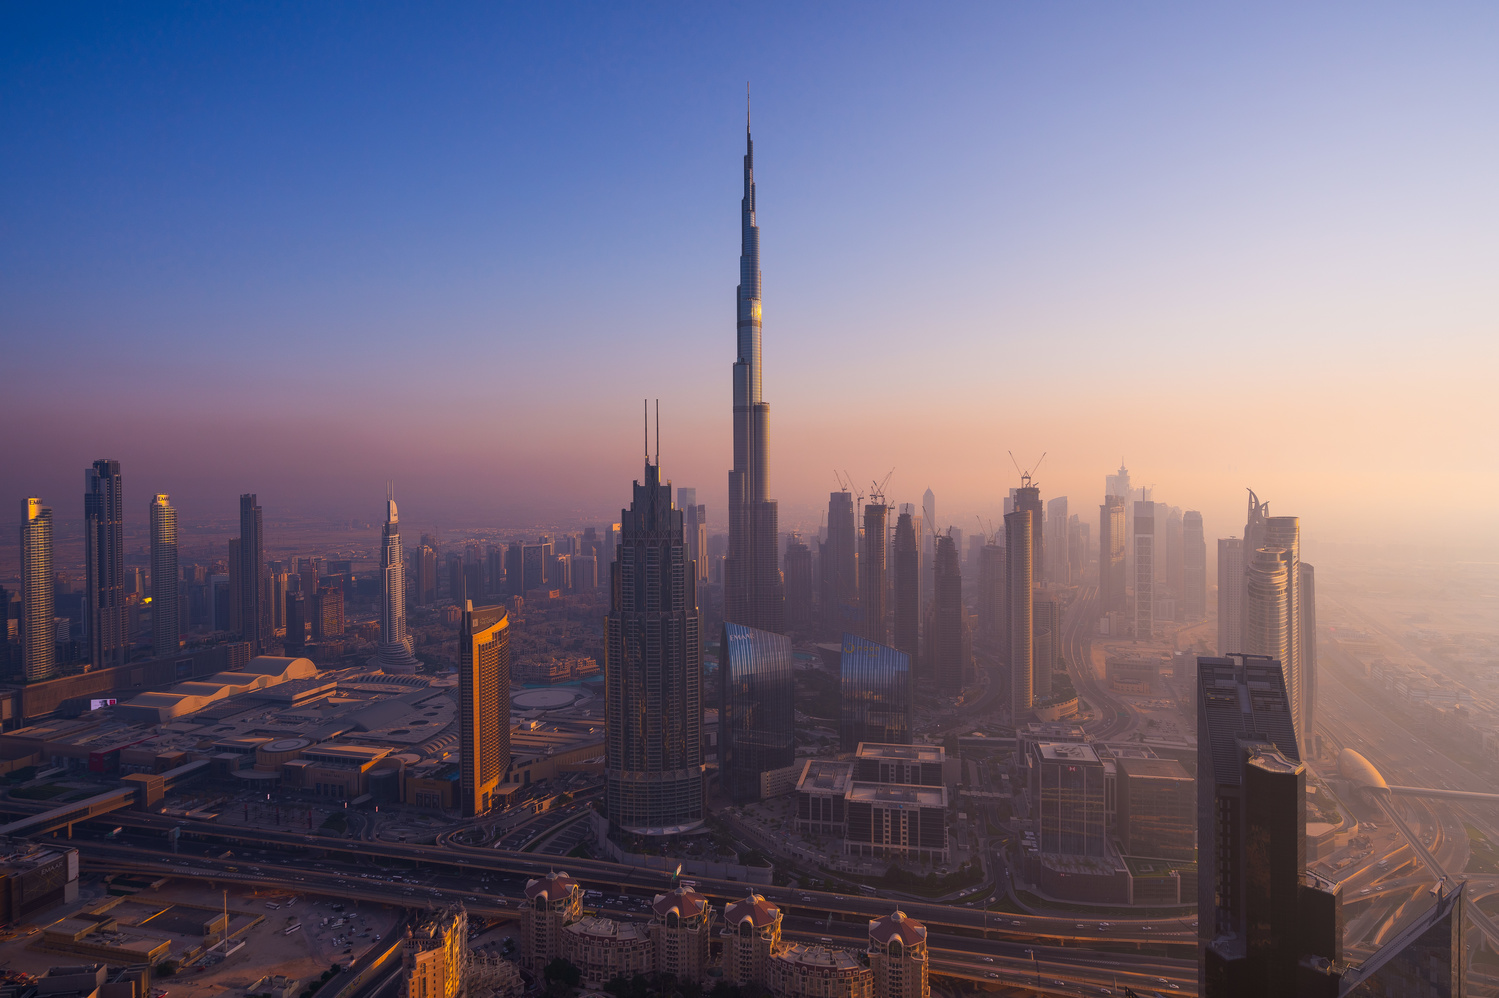 Humidity from the 75th floor. by Ben Preece